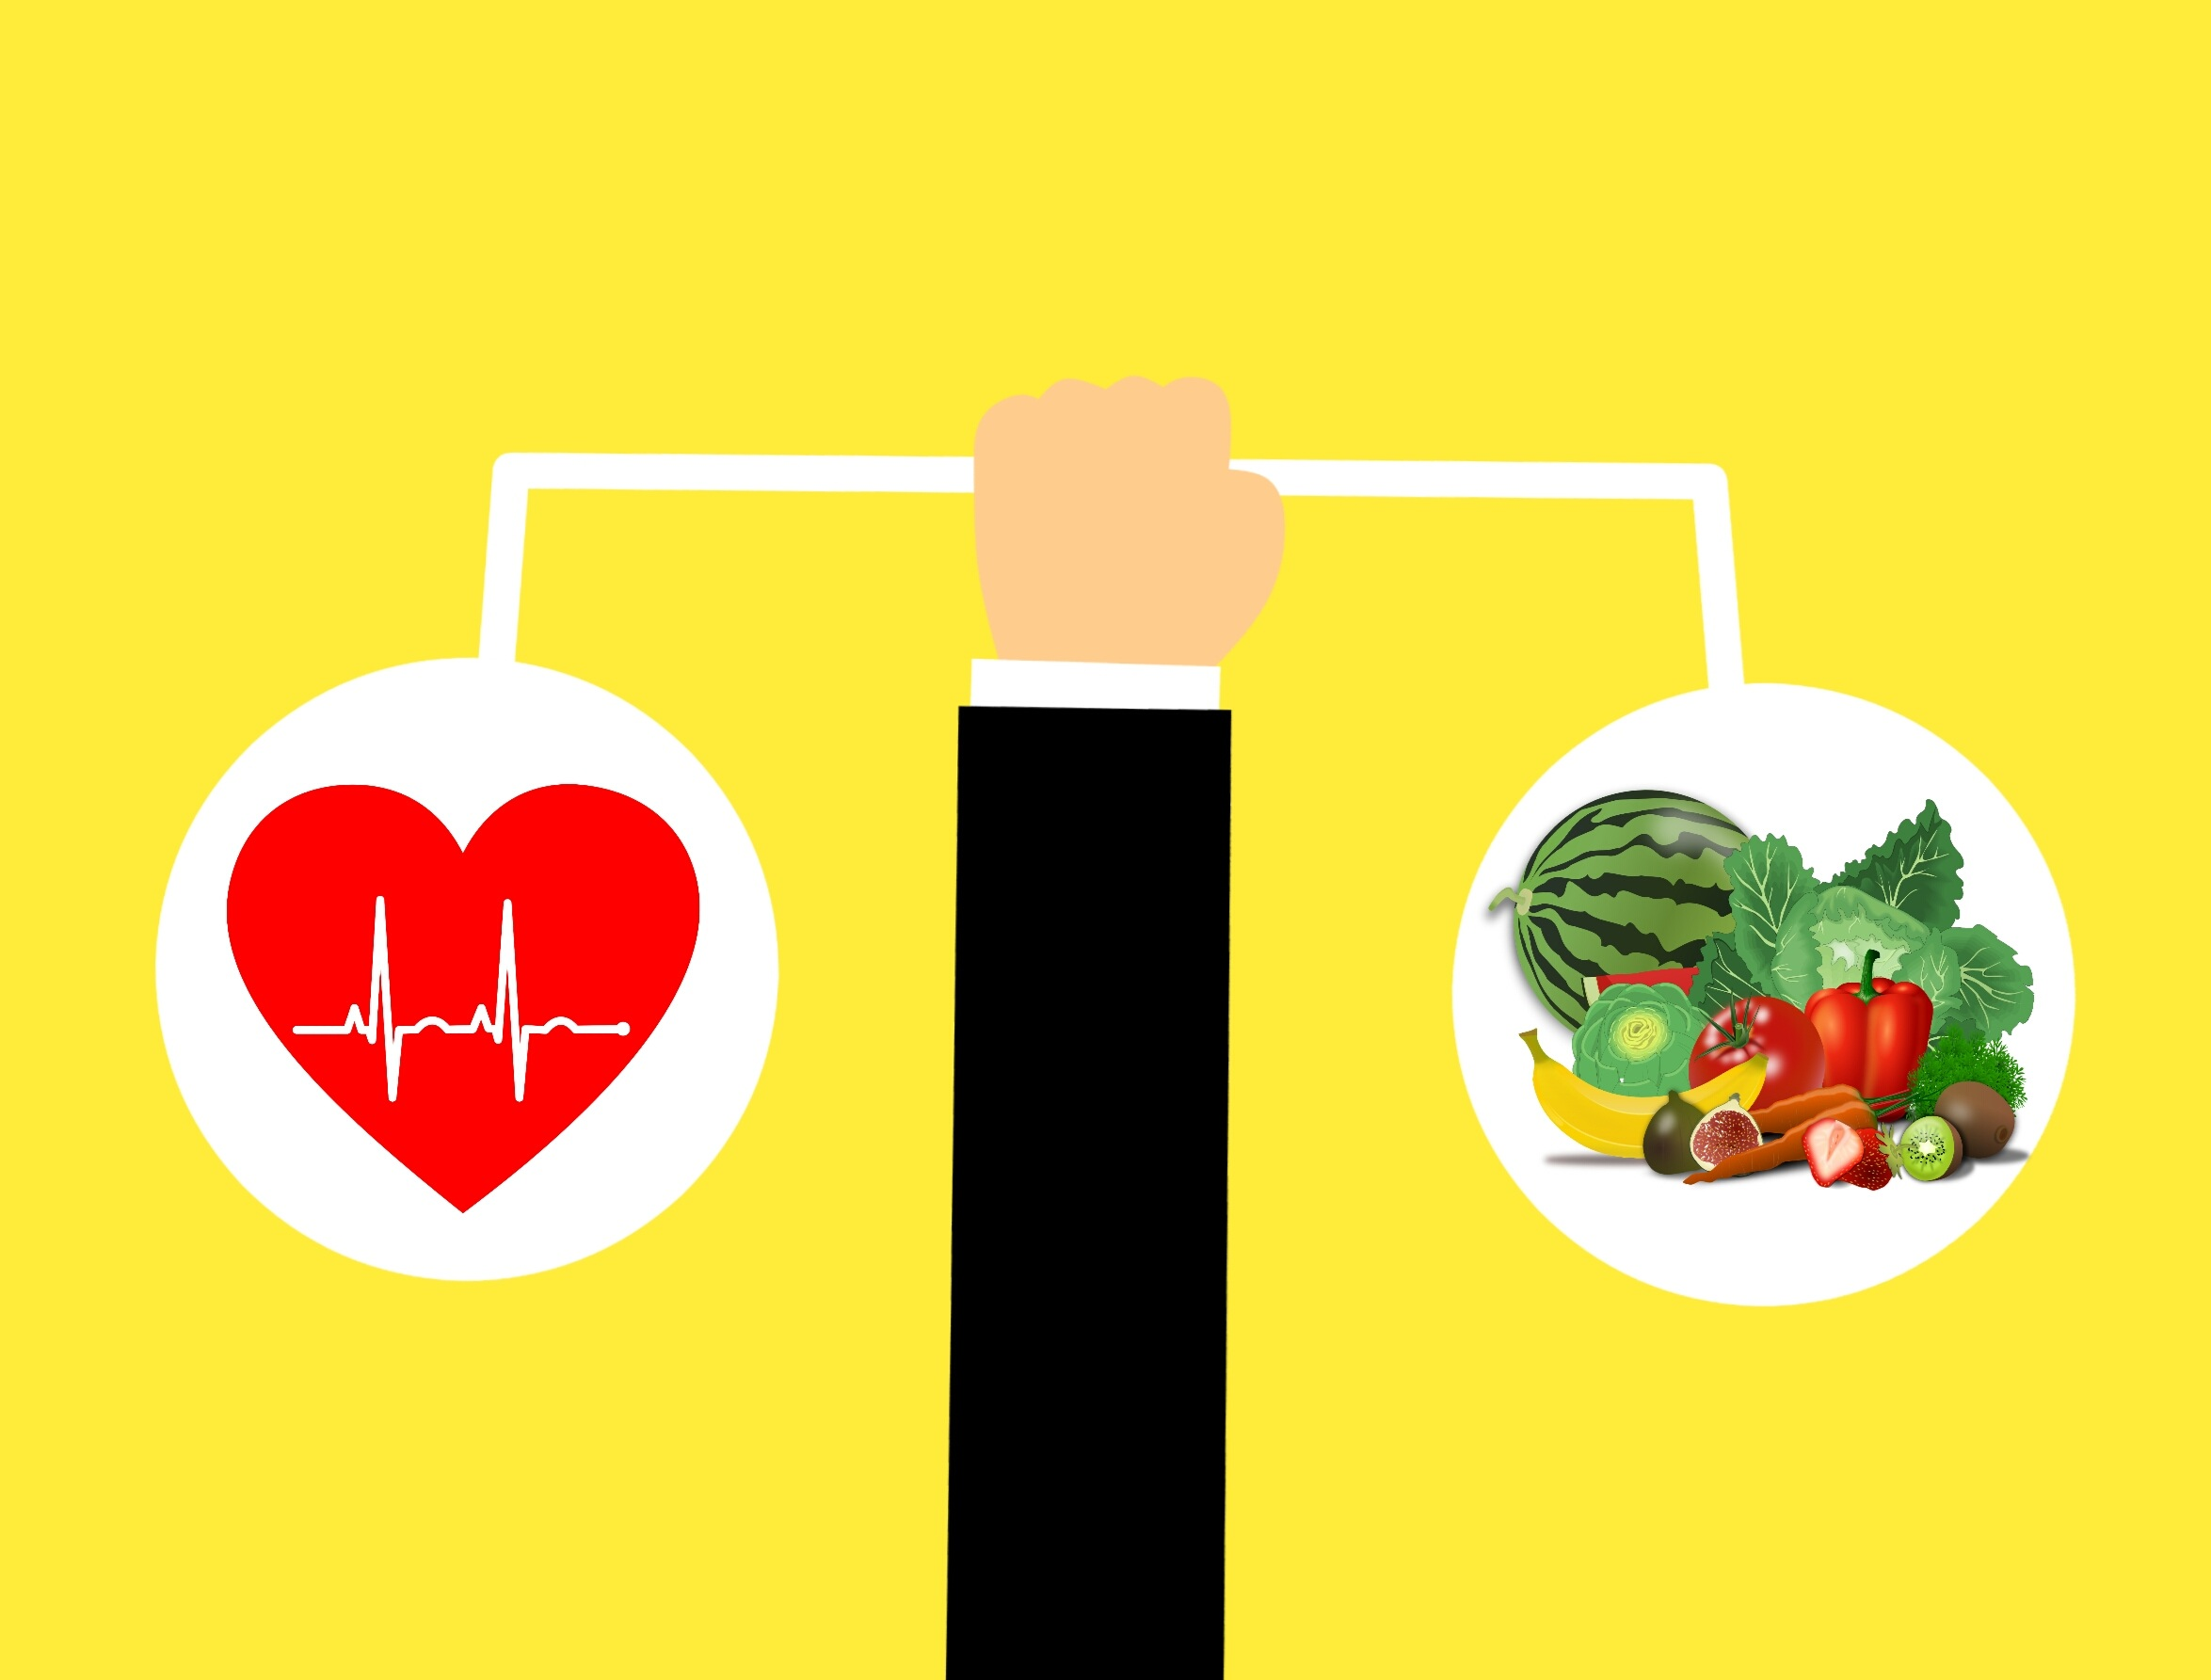 Cartoon hand holding a scale with heart on one side and vegetables on the other